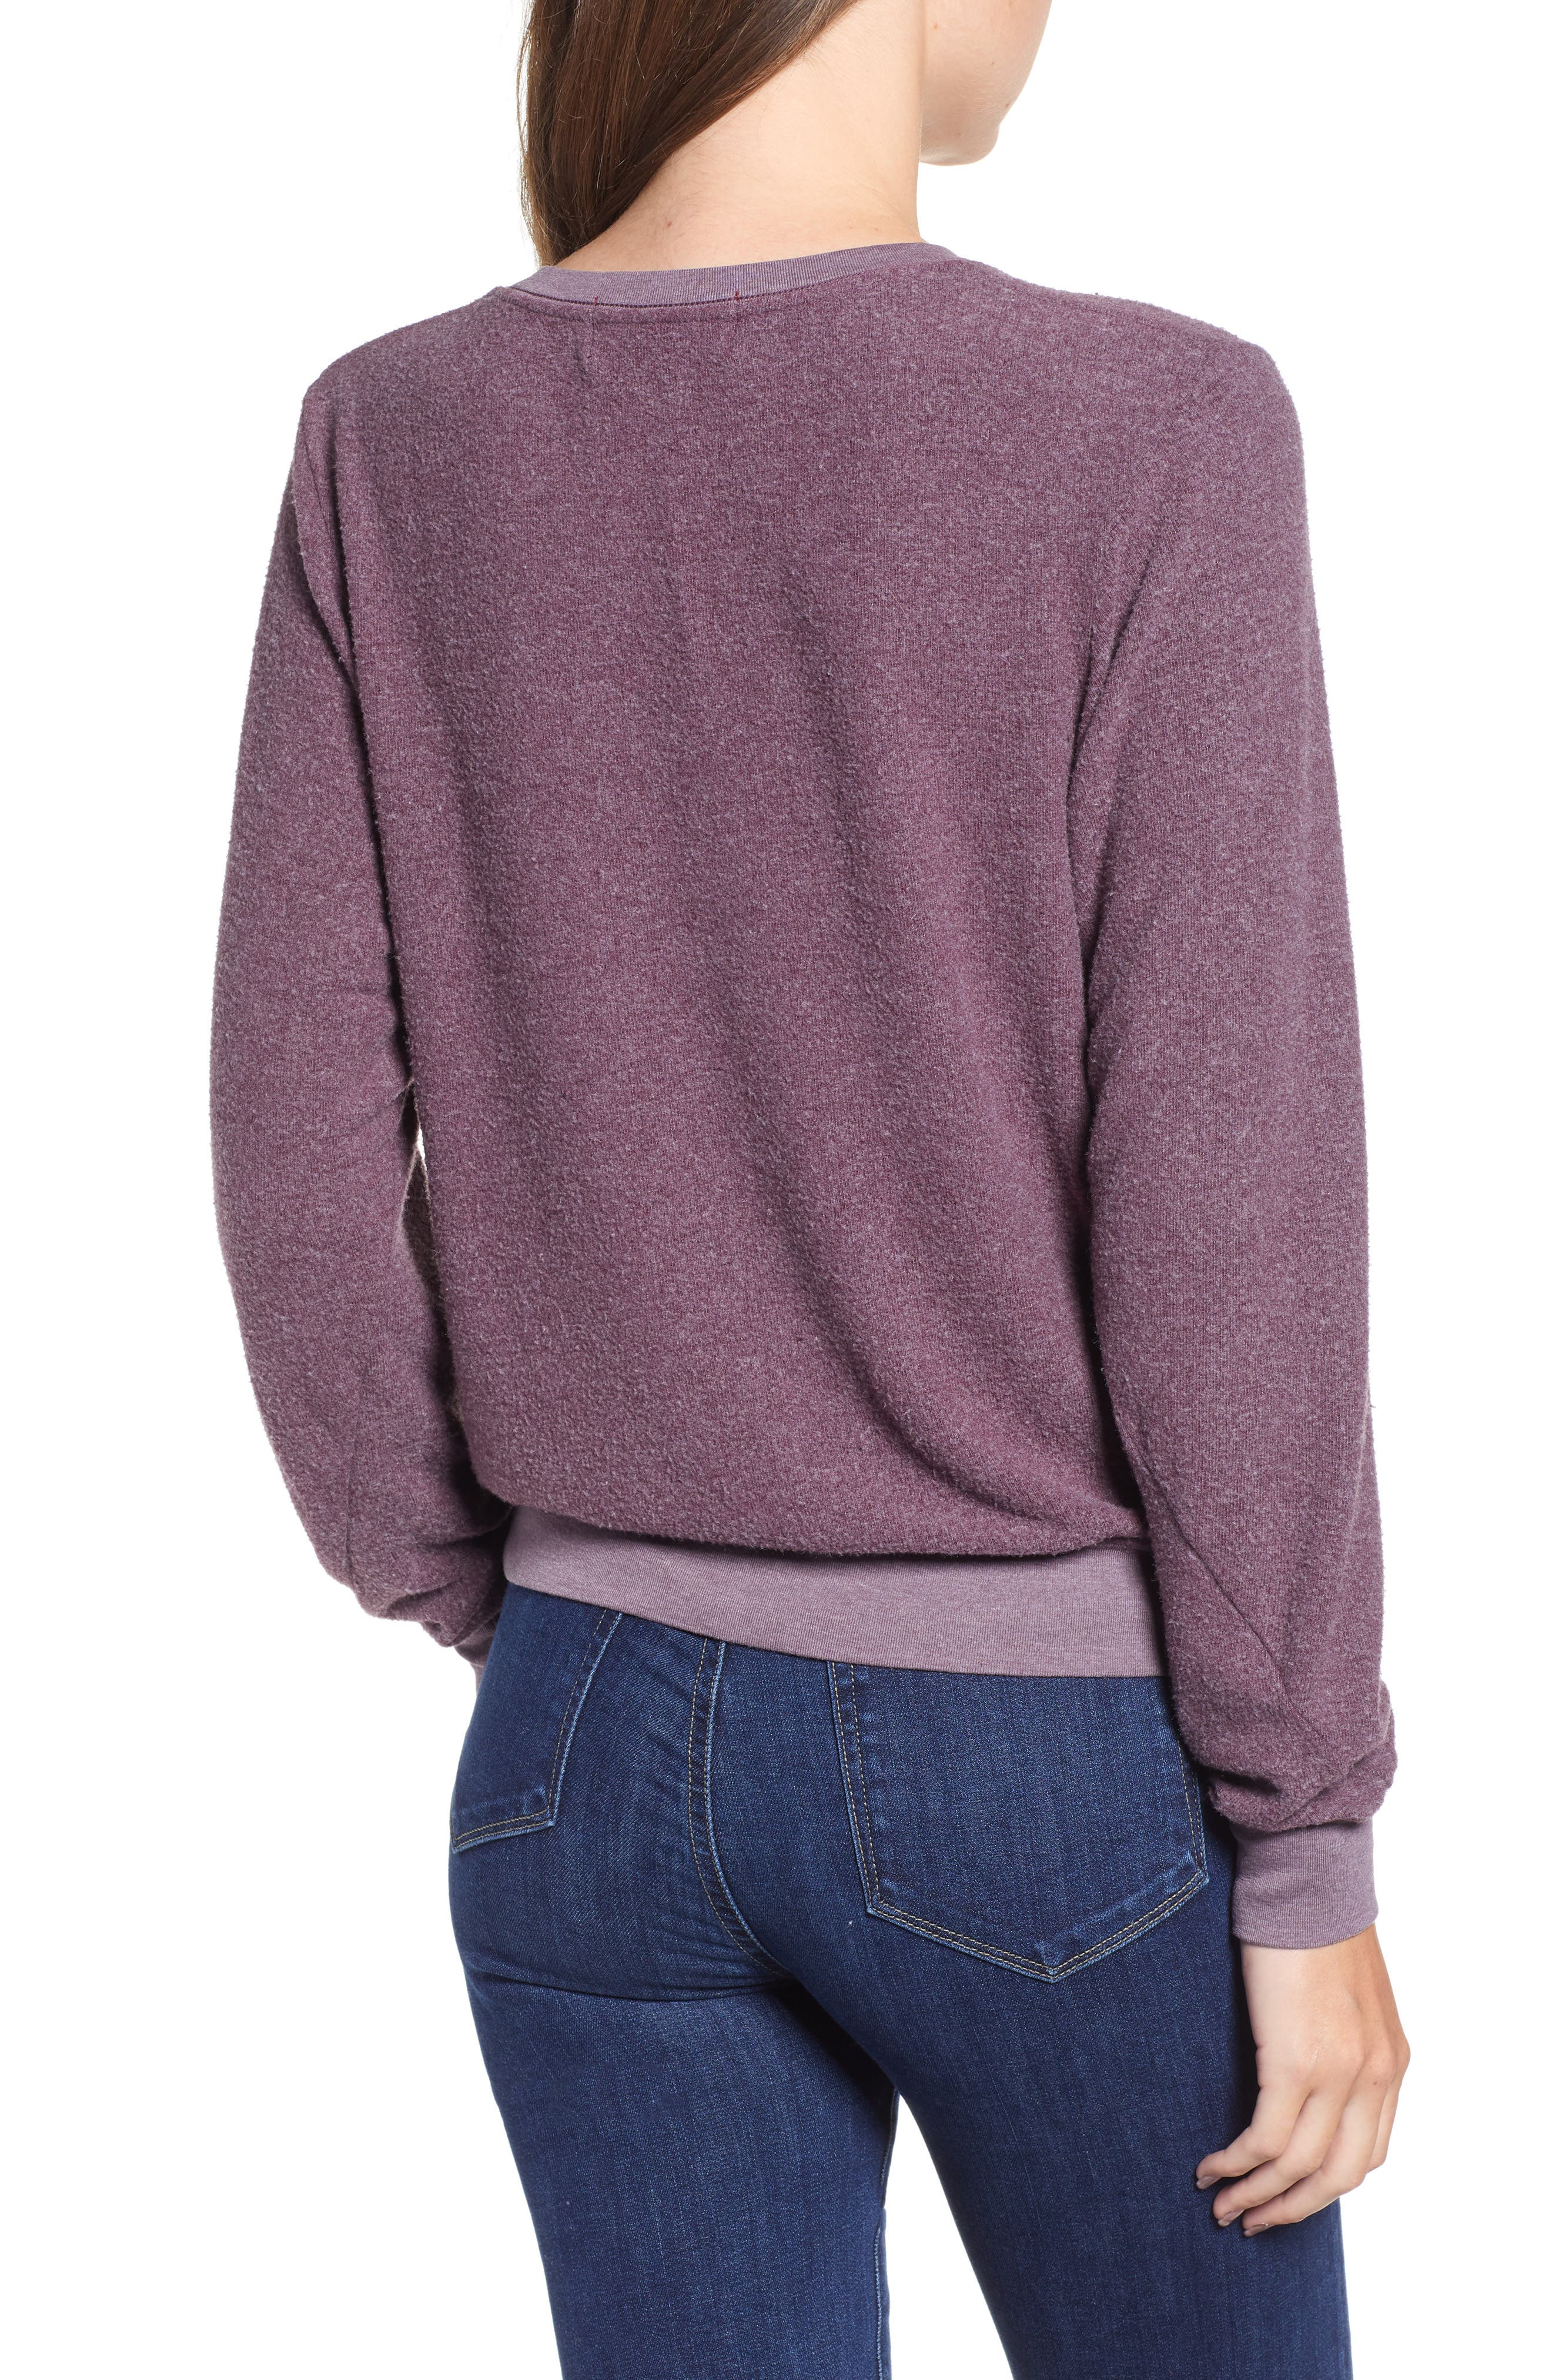 Ready For Bed Baggy Beach Jumper Sweatshirt,                             Alternate thumbnail 2, color,                             CRUSHED BERRY